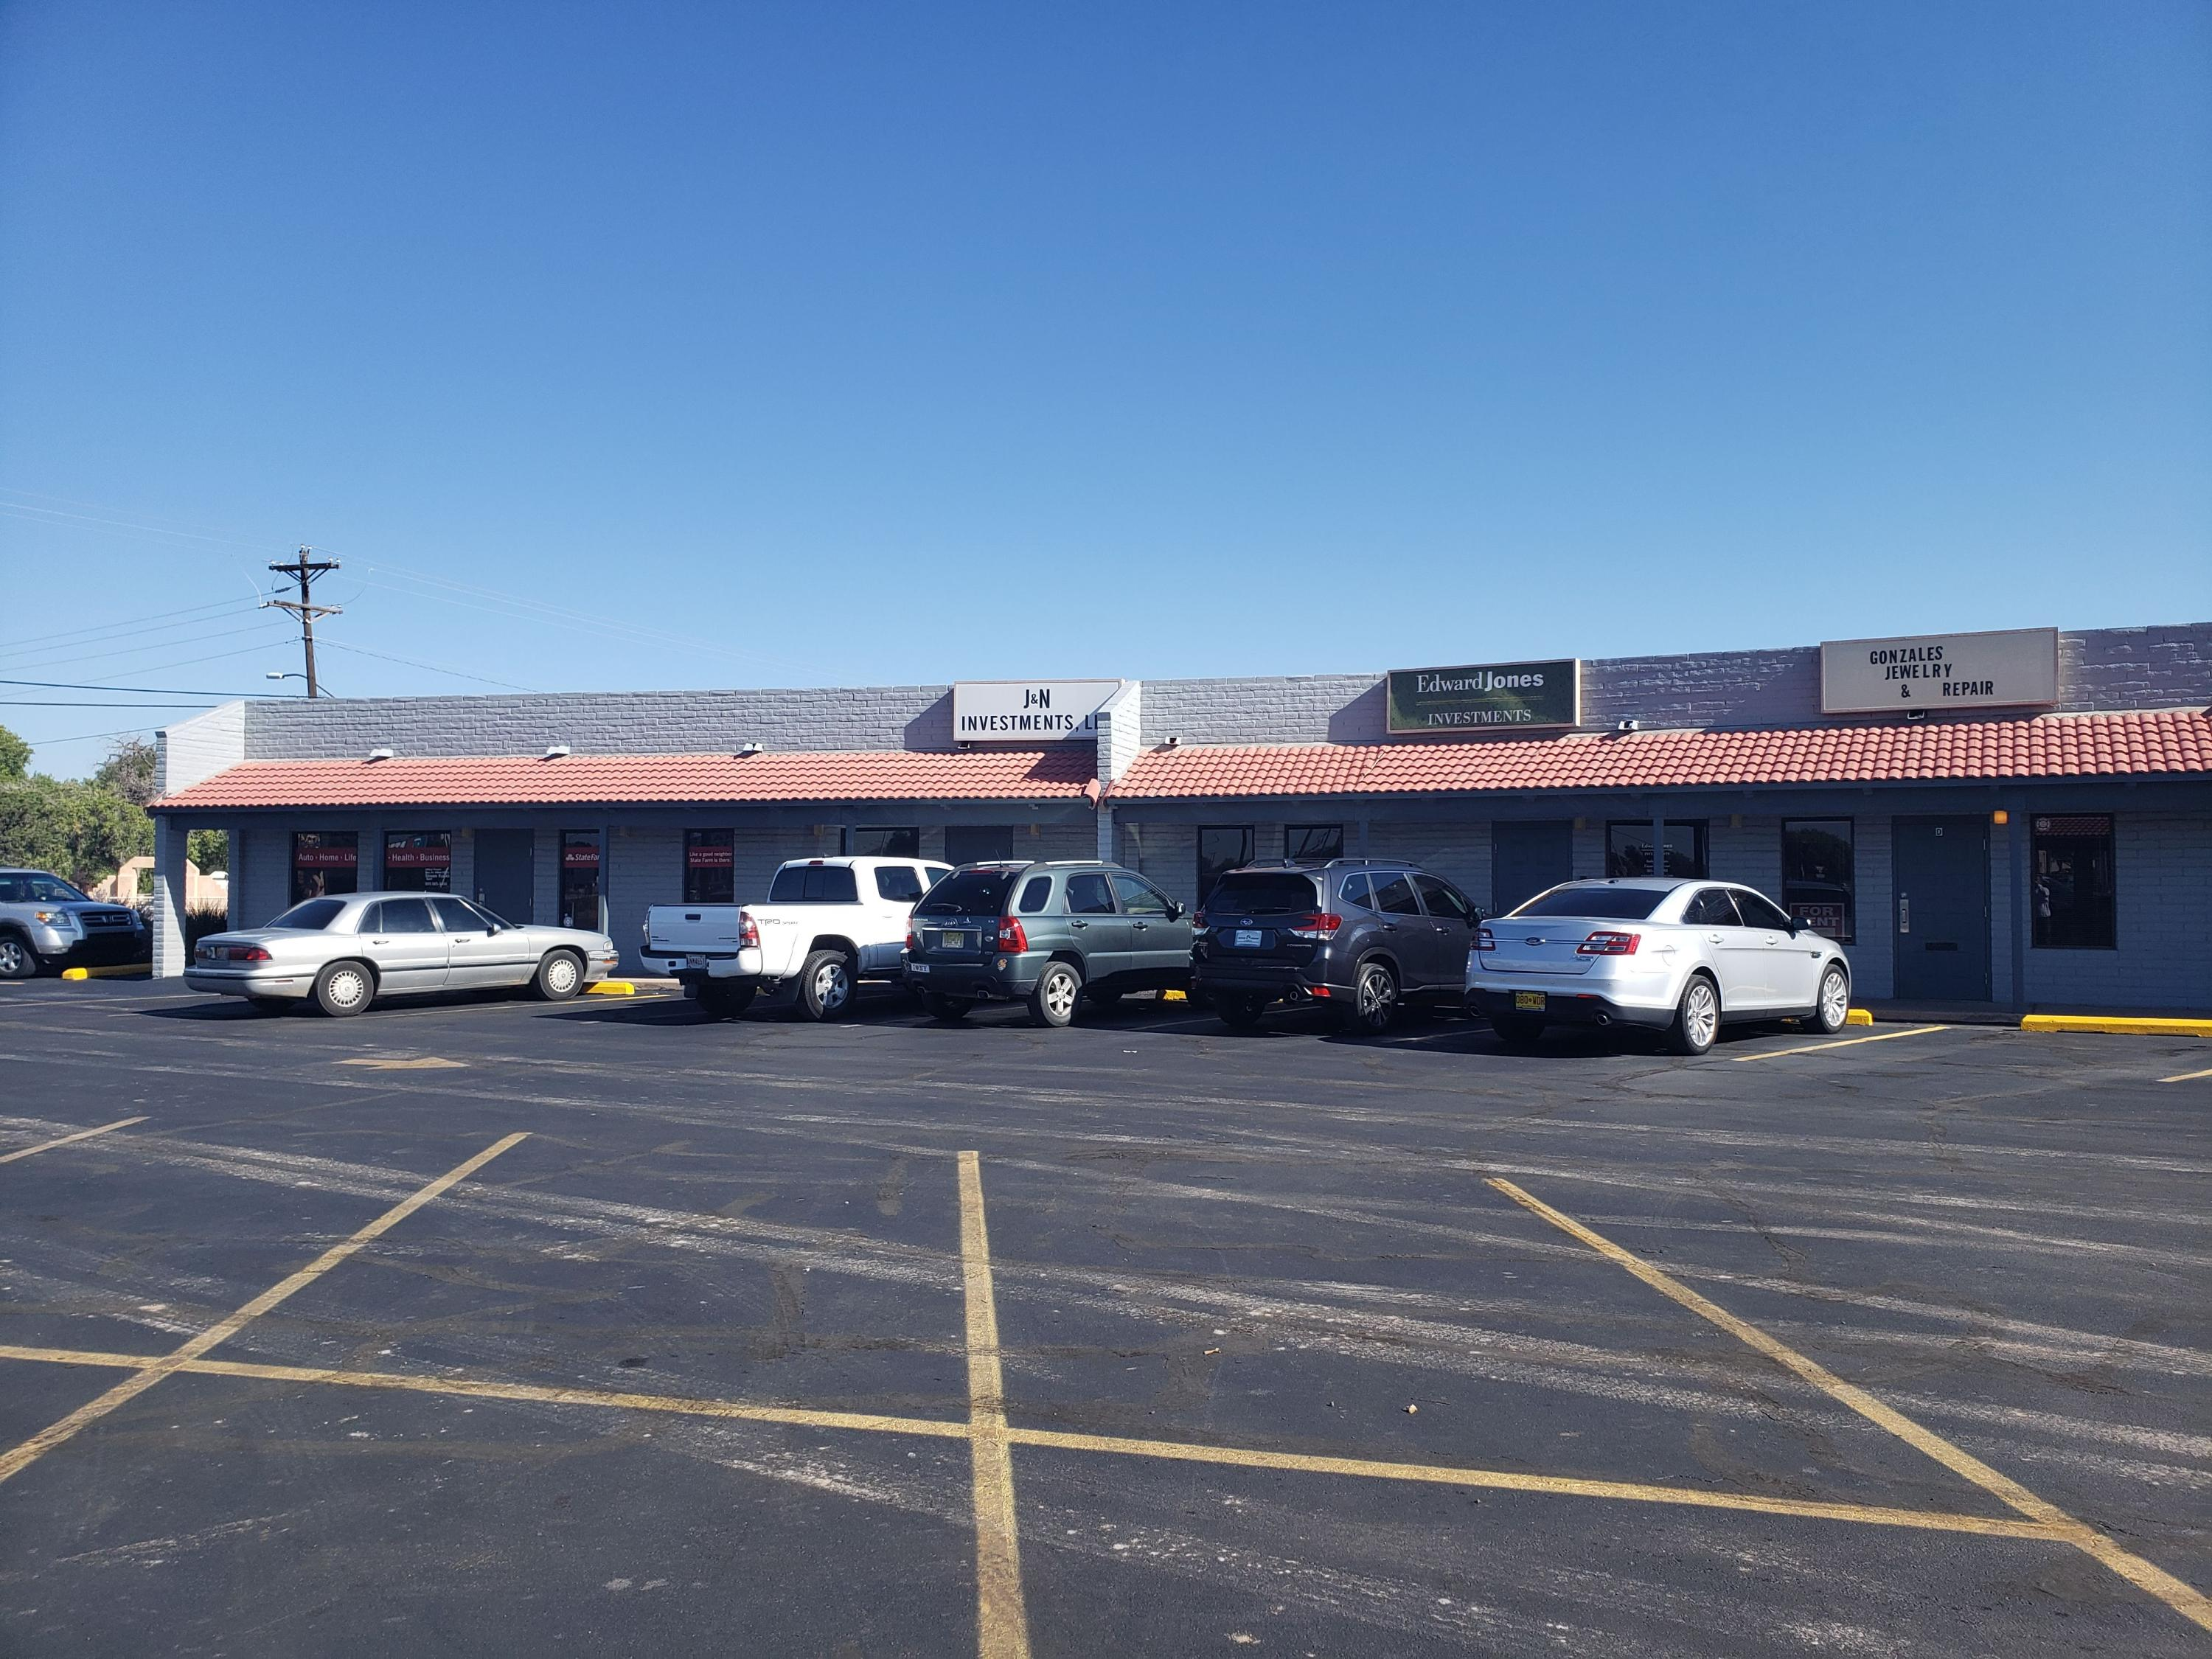 Commercial Office/Retail 5 suites easy to lease. Lots of room to expand and build more suites. Priced at an 8 CAP. Month/Month leases but tenants would sign long term leases. Most tenants have been there 5+ years.